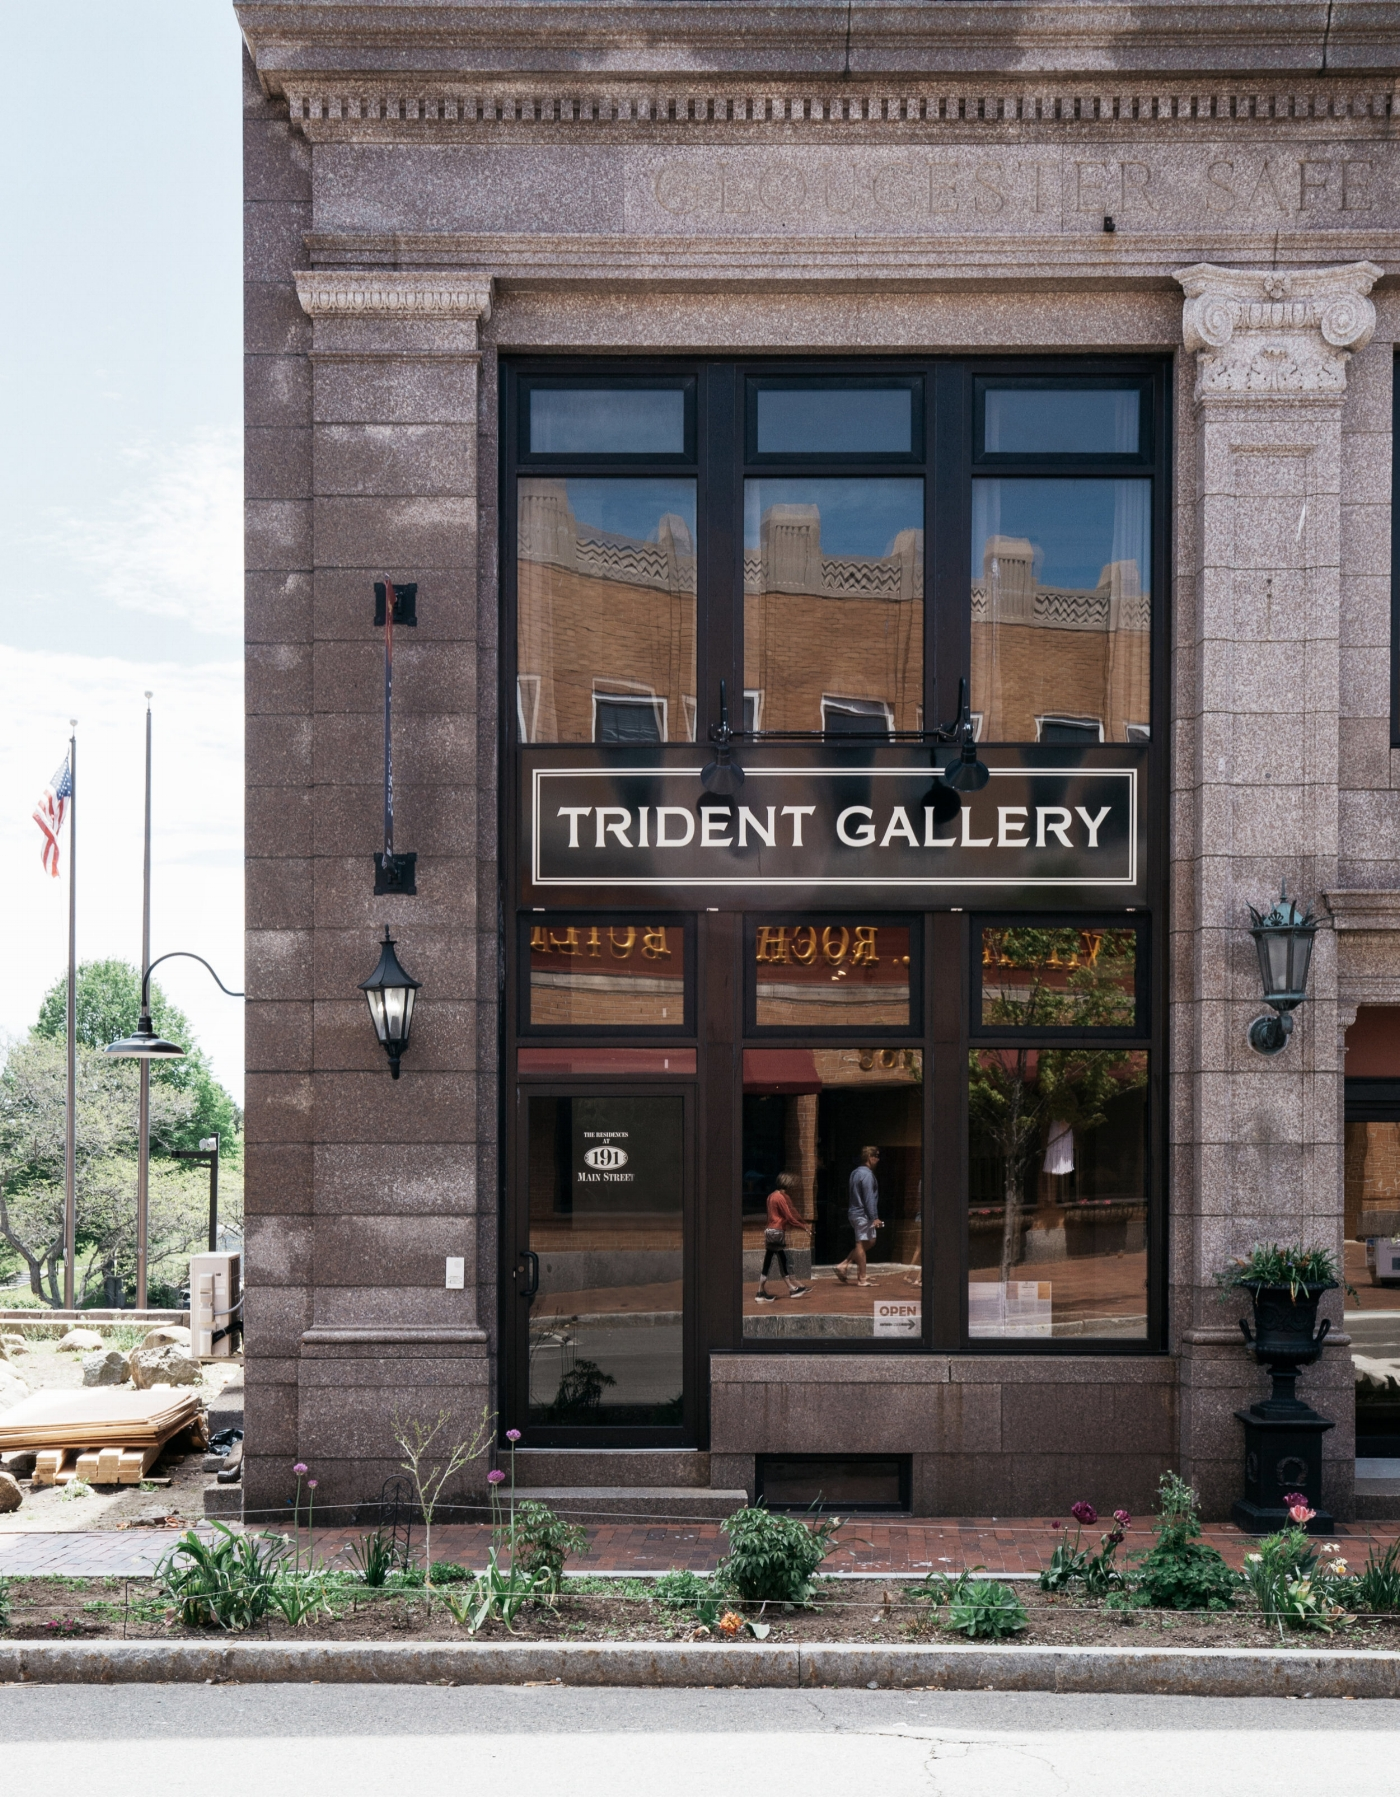 Trident Gallery is on Main Street in Gloucester. (Photograph by Dana Wendt)